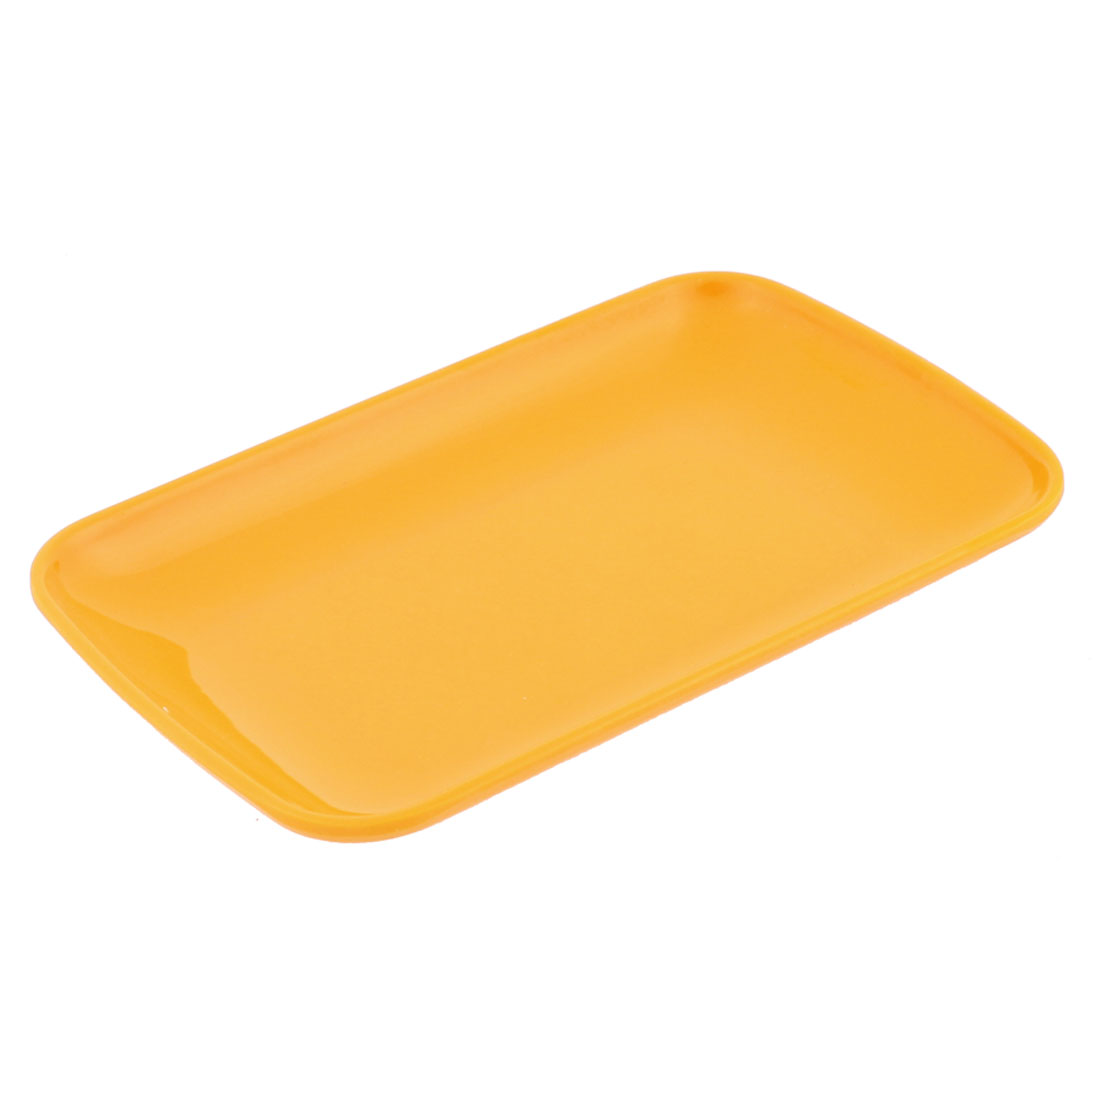 Plastic Rectangle Design Dessert Appetizer Vermicelli Plate Yellow